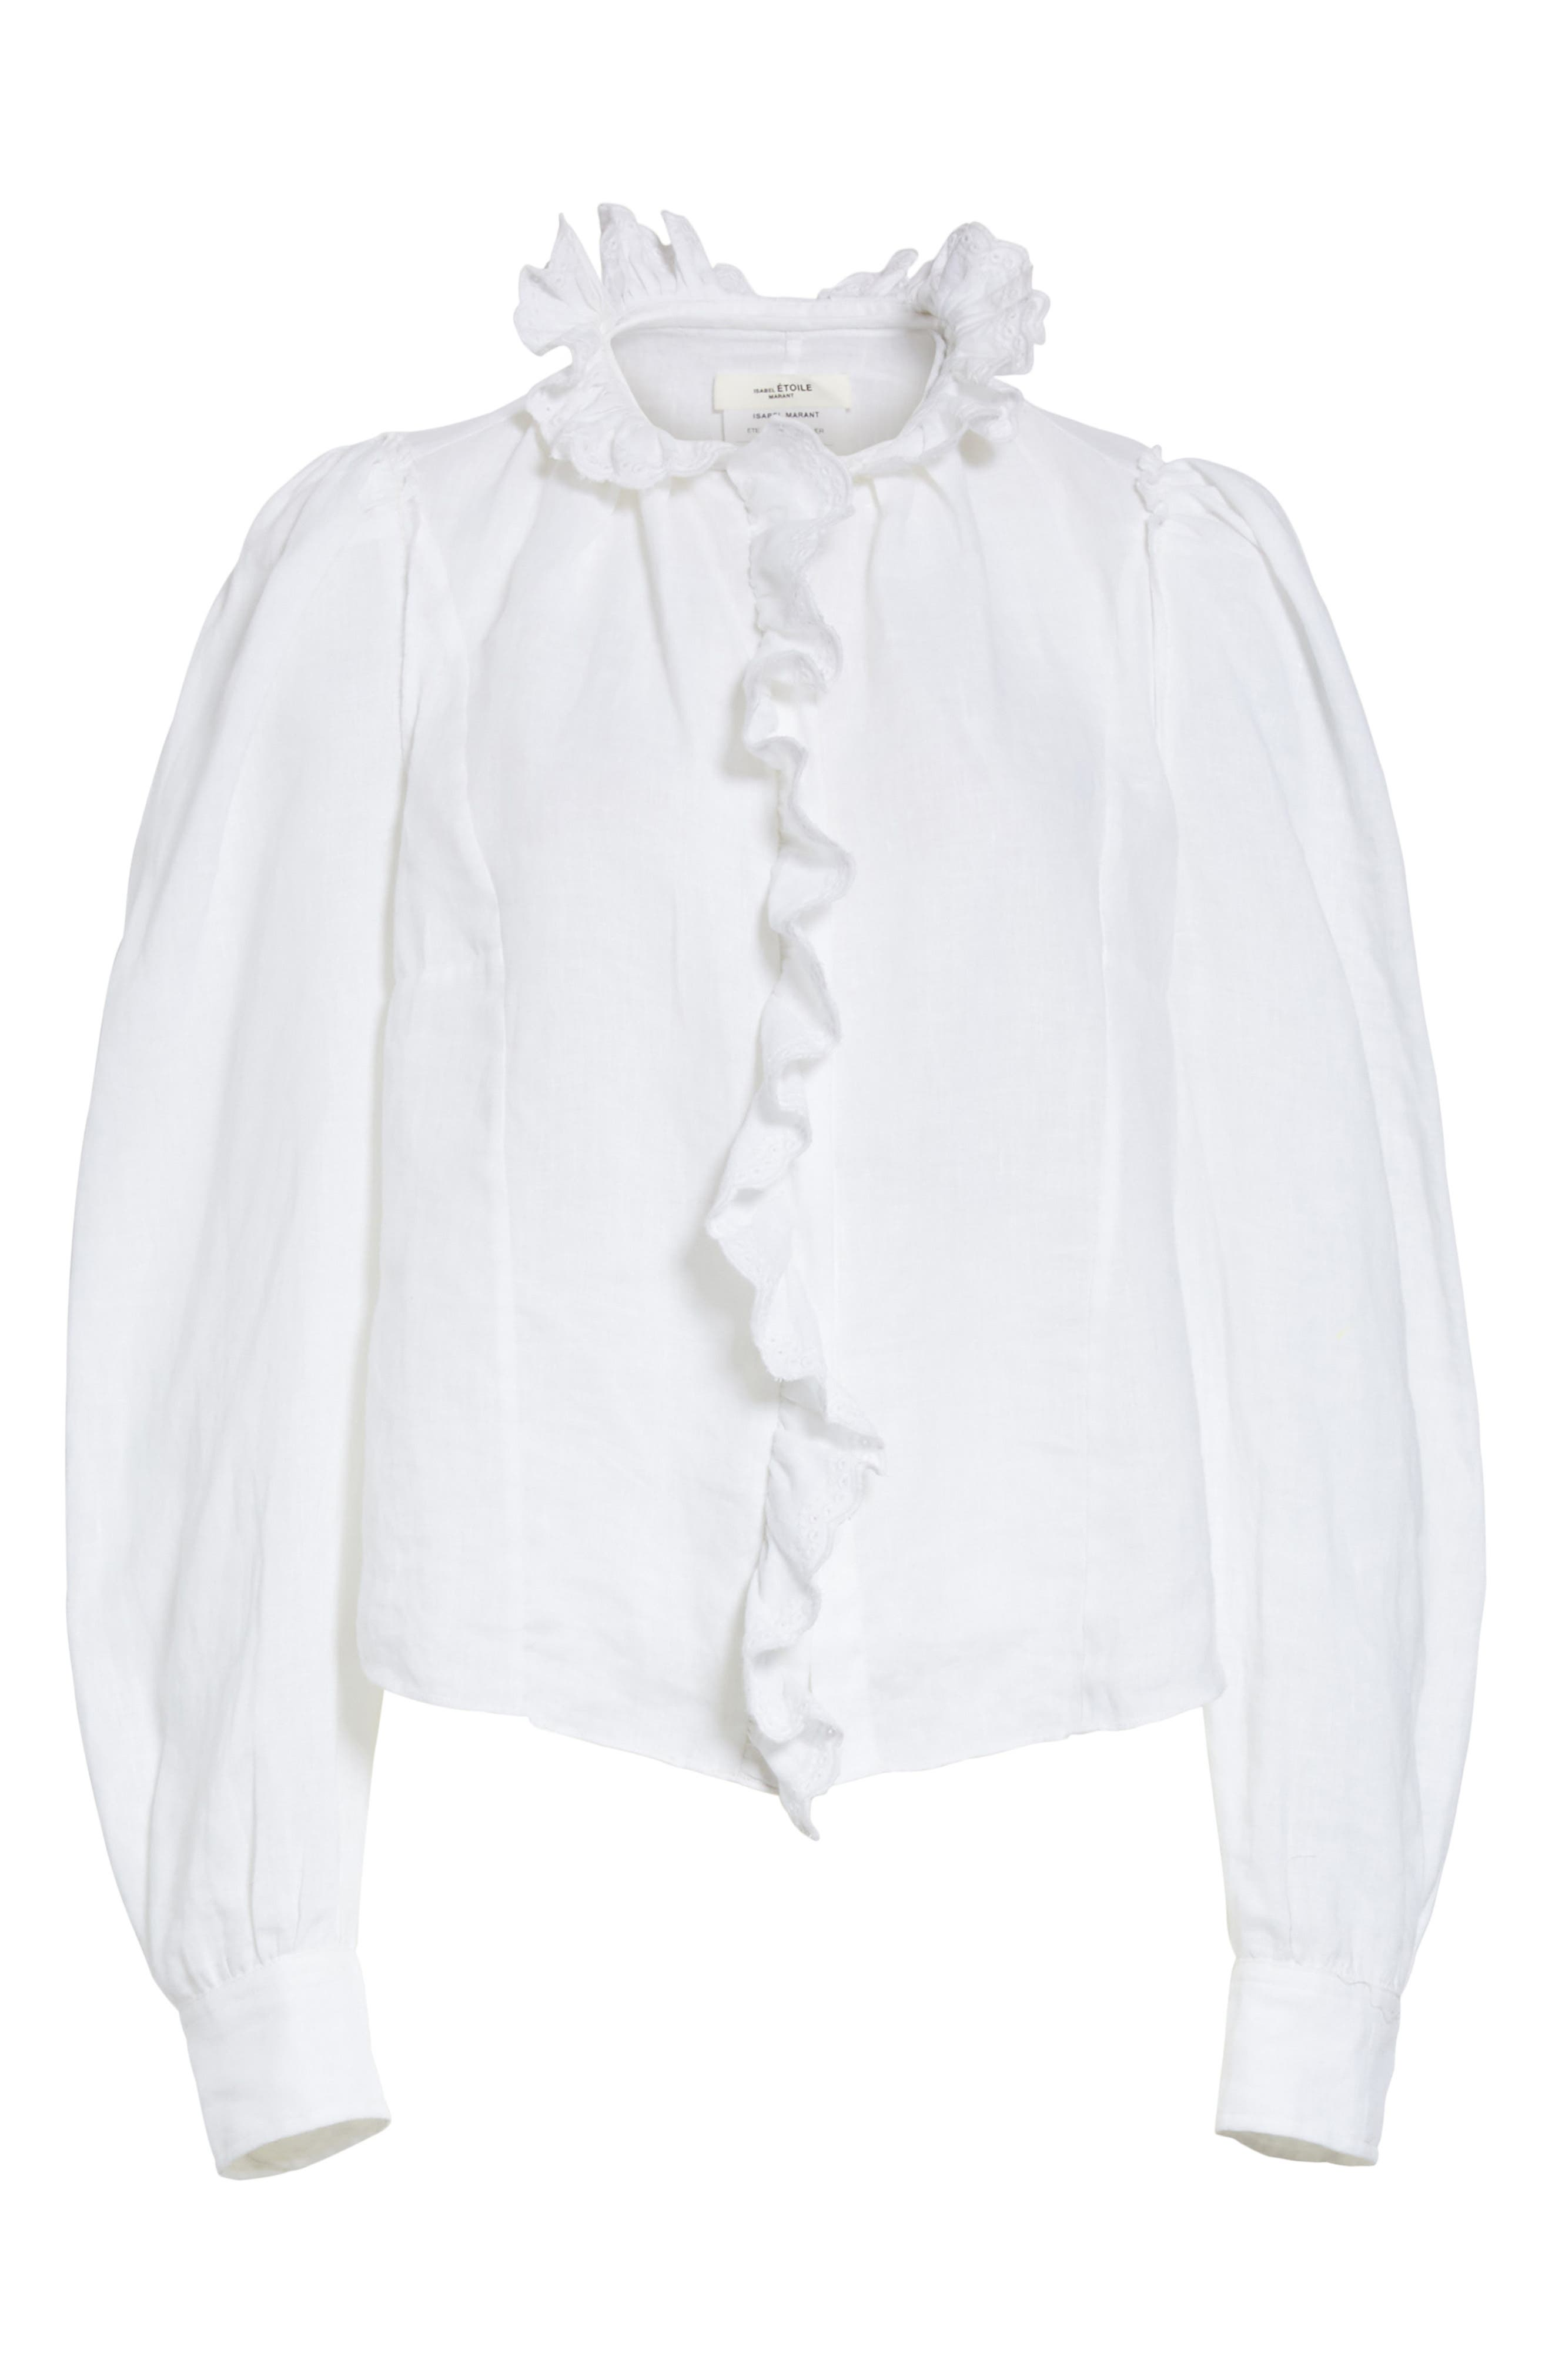 Isabel Marant Étoile Tauren Broderie Linen Shirt,                             Alternate thumbnail 6, color,                             100